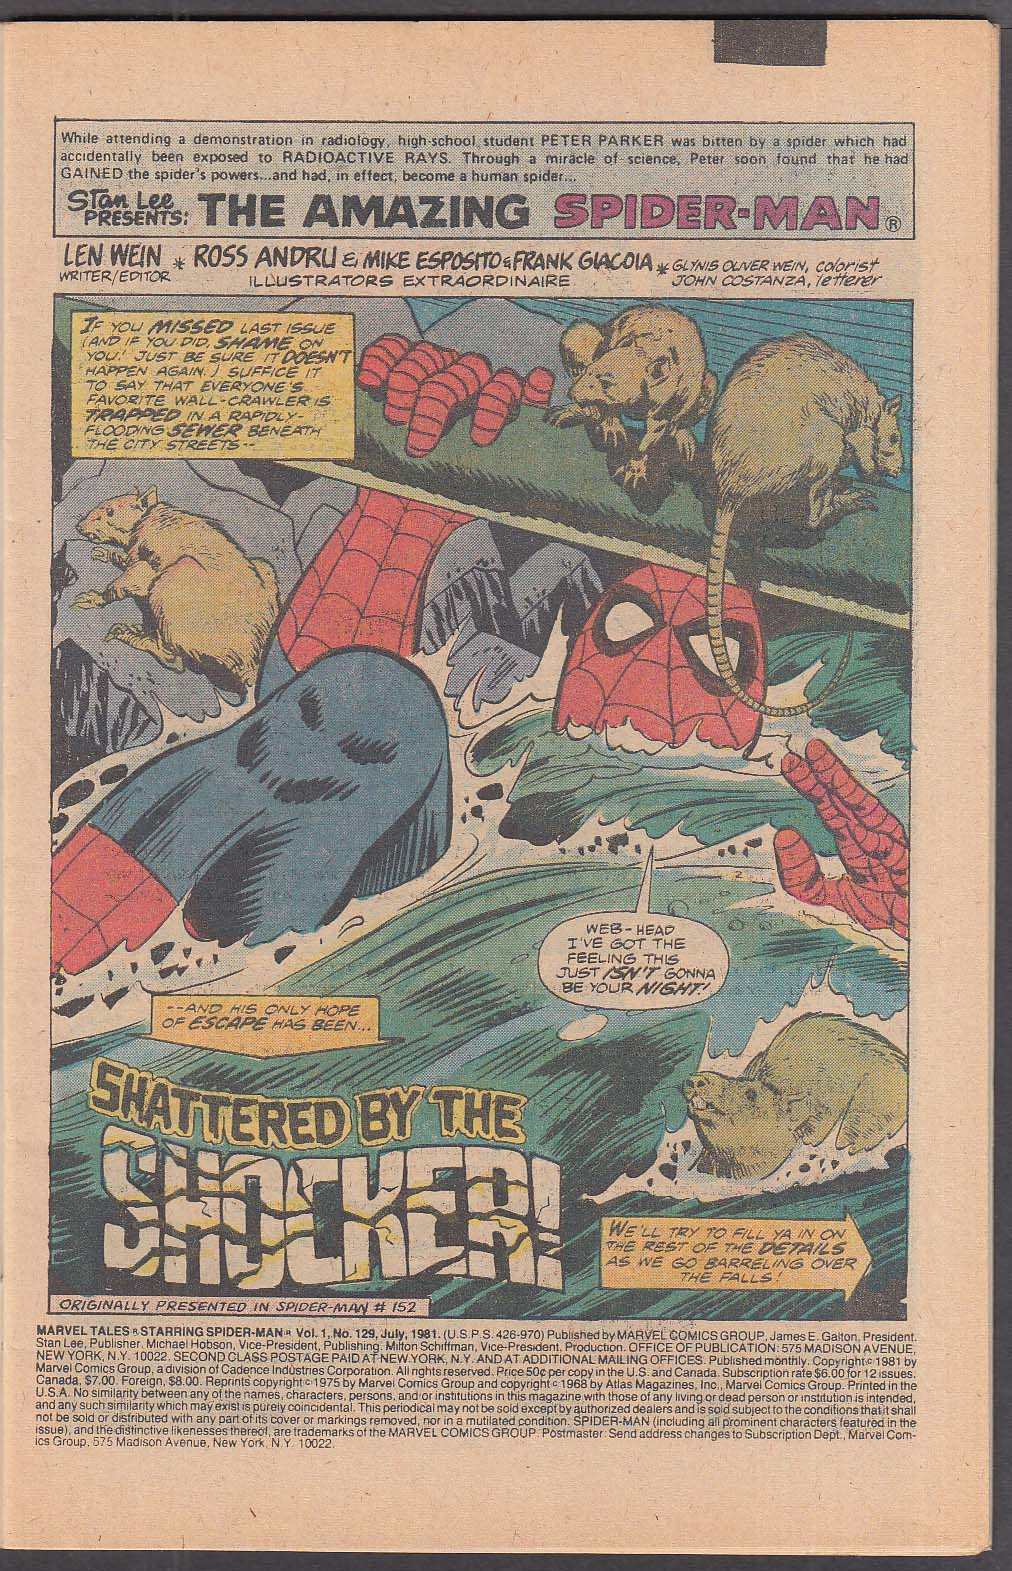 Image for MARVEL TALES #129 Spider-Man comic book 7 1981